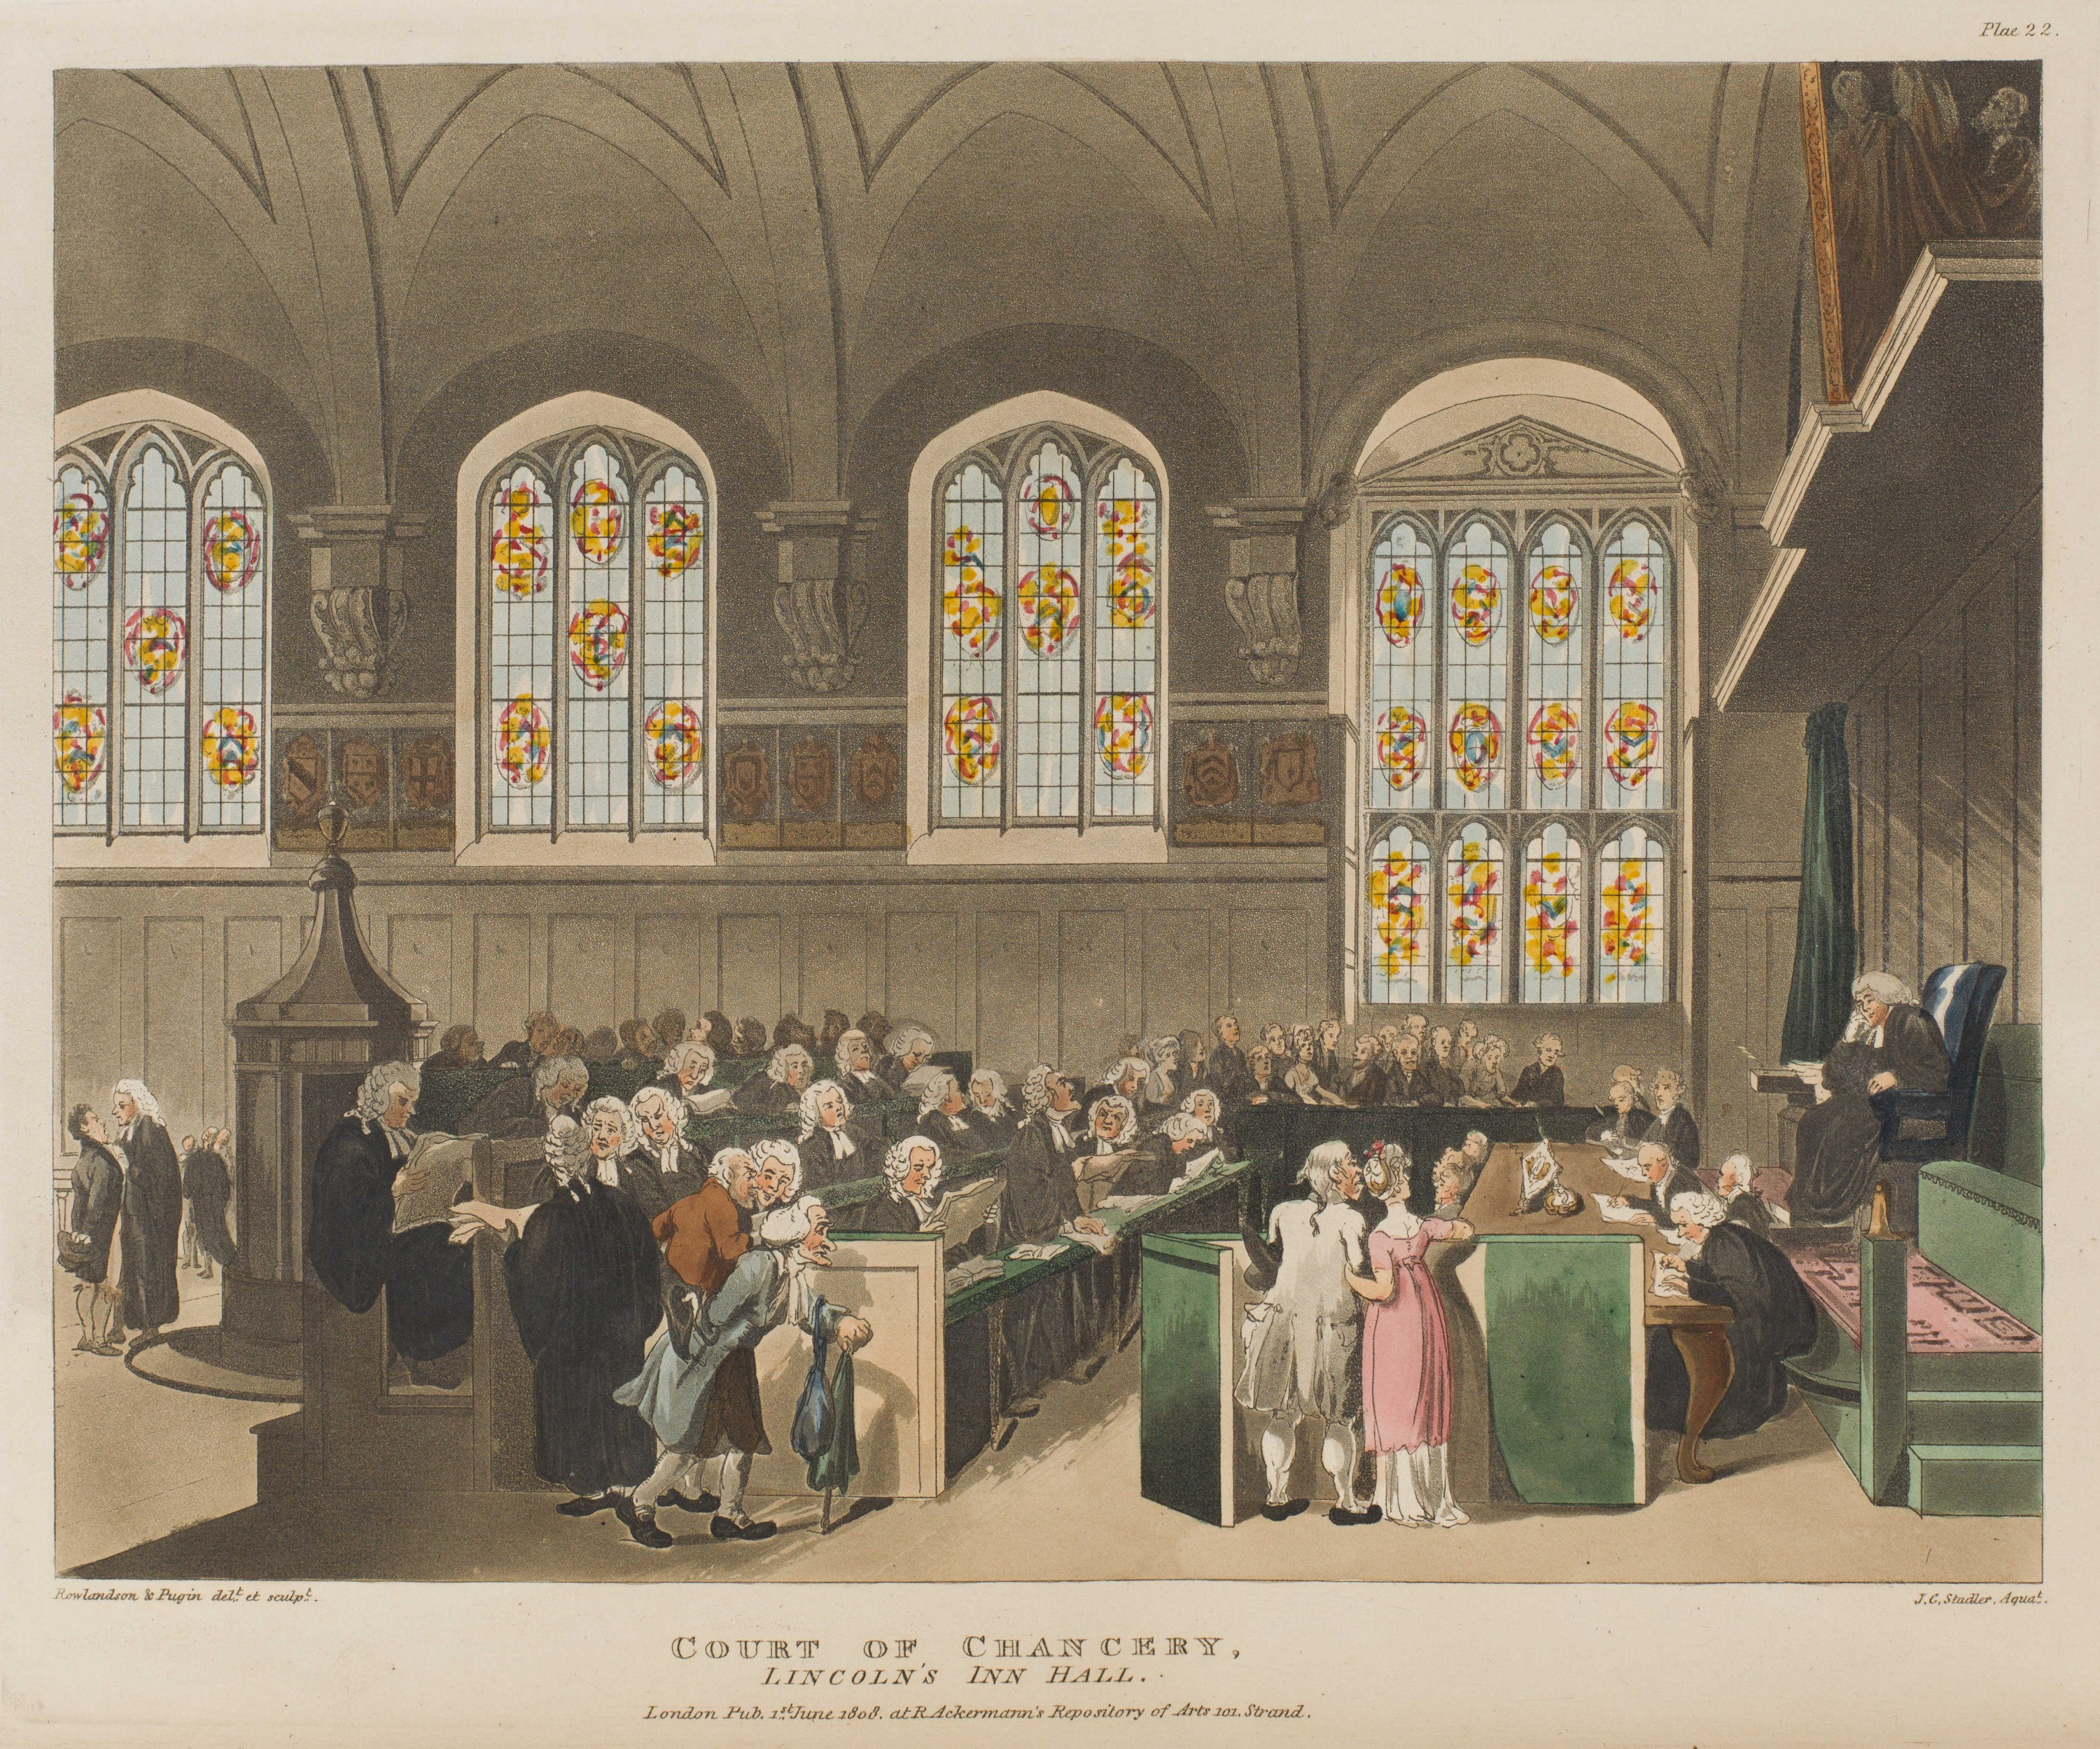 022-Court-of-Chancery-Lincolns-Inn-Hall